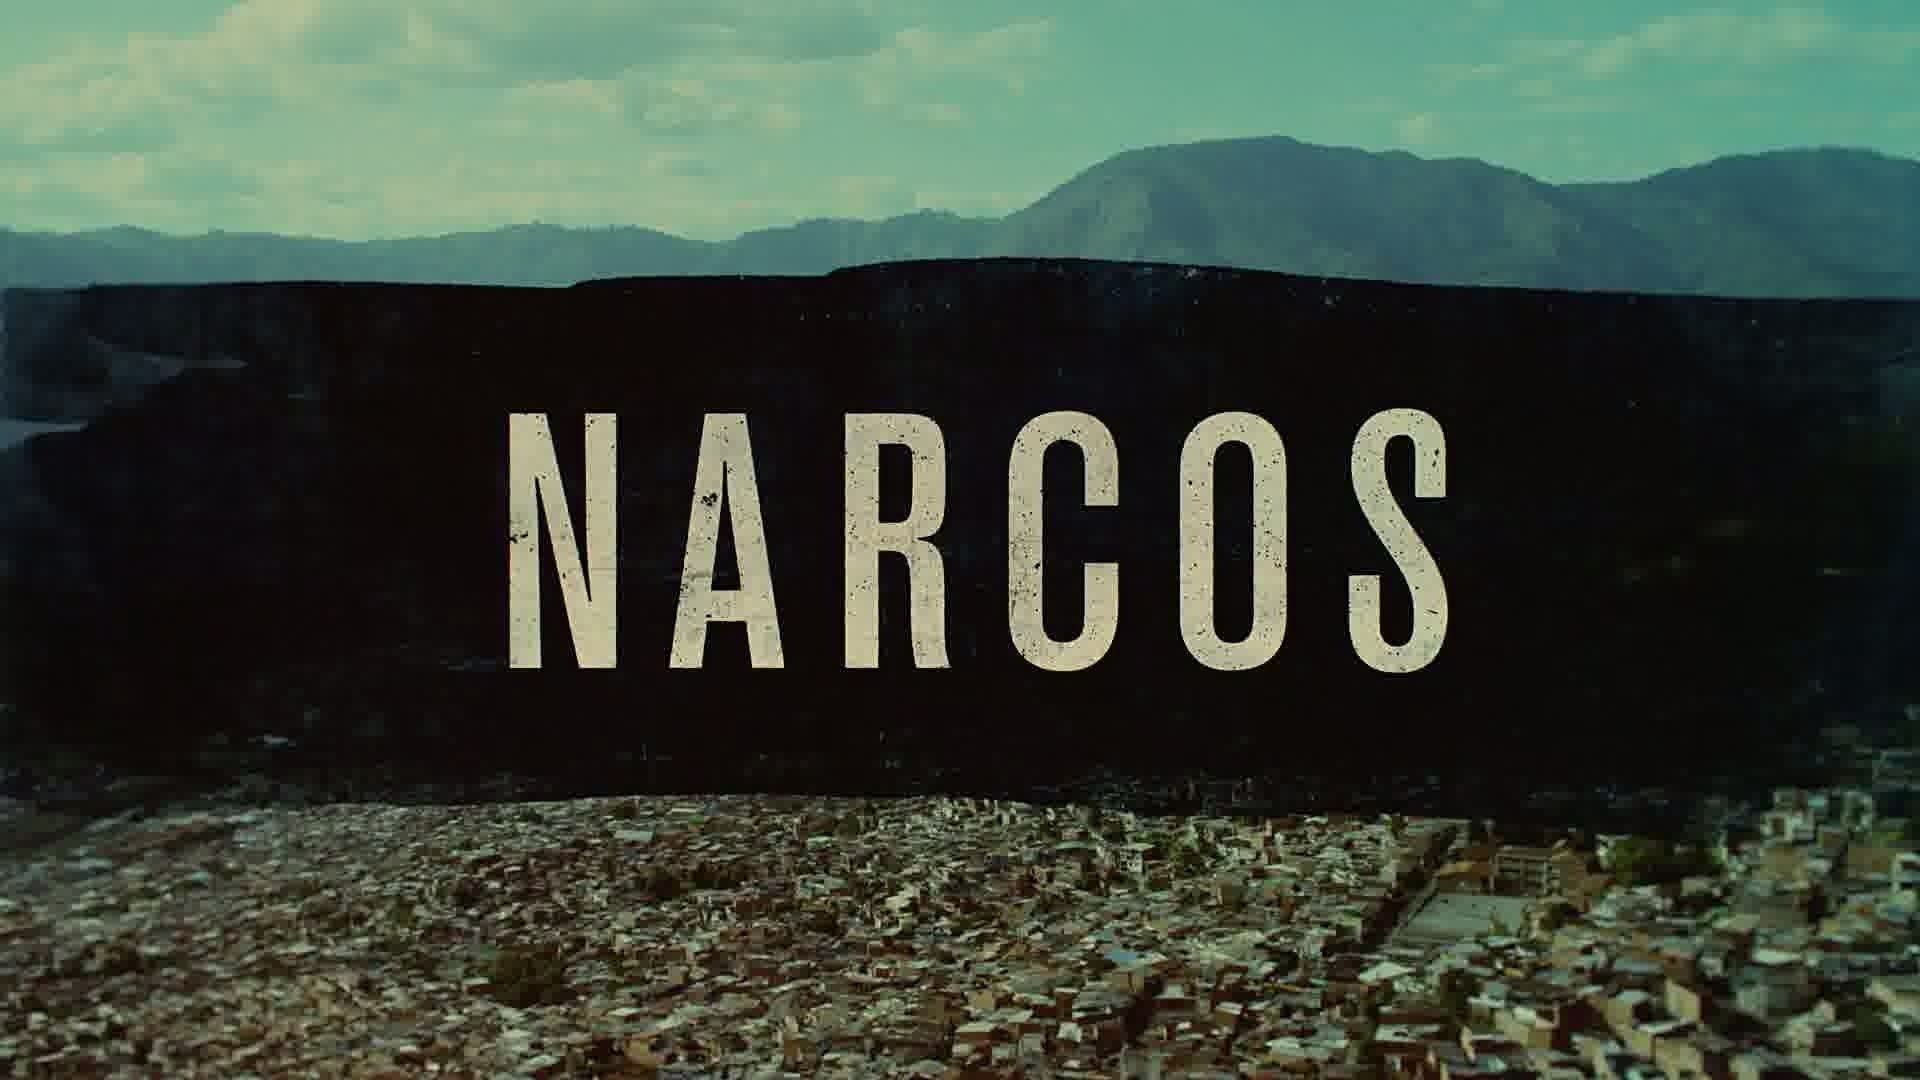 Narcos Wallpapers Top Free Narcos Backgrounds